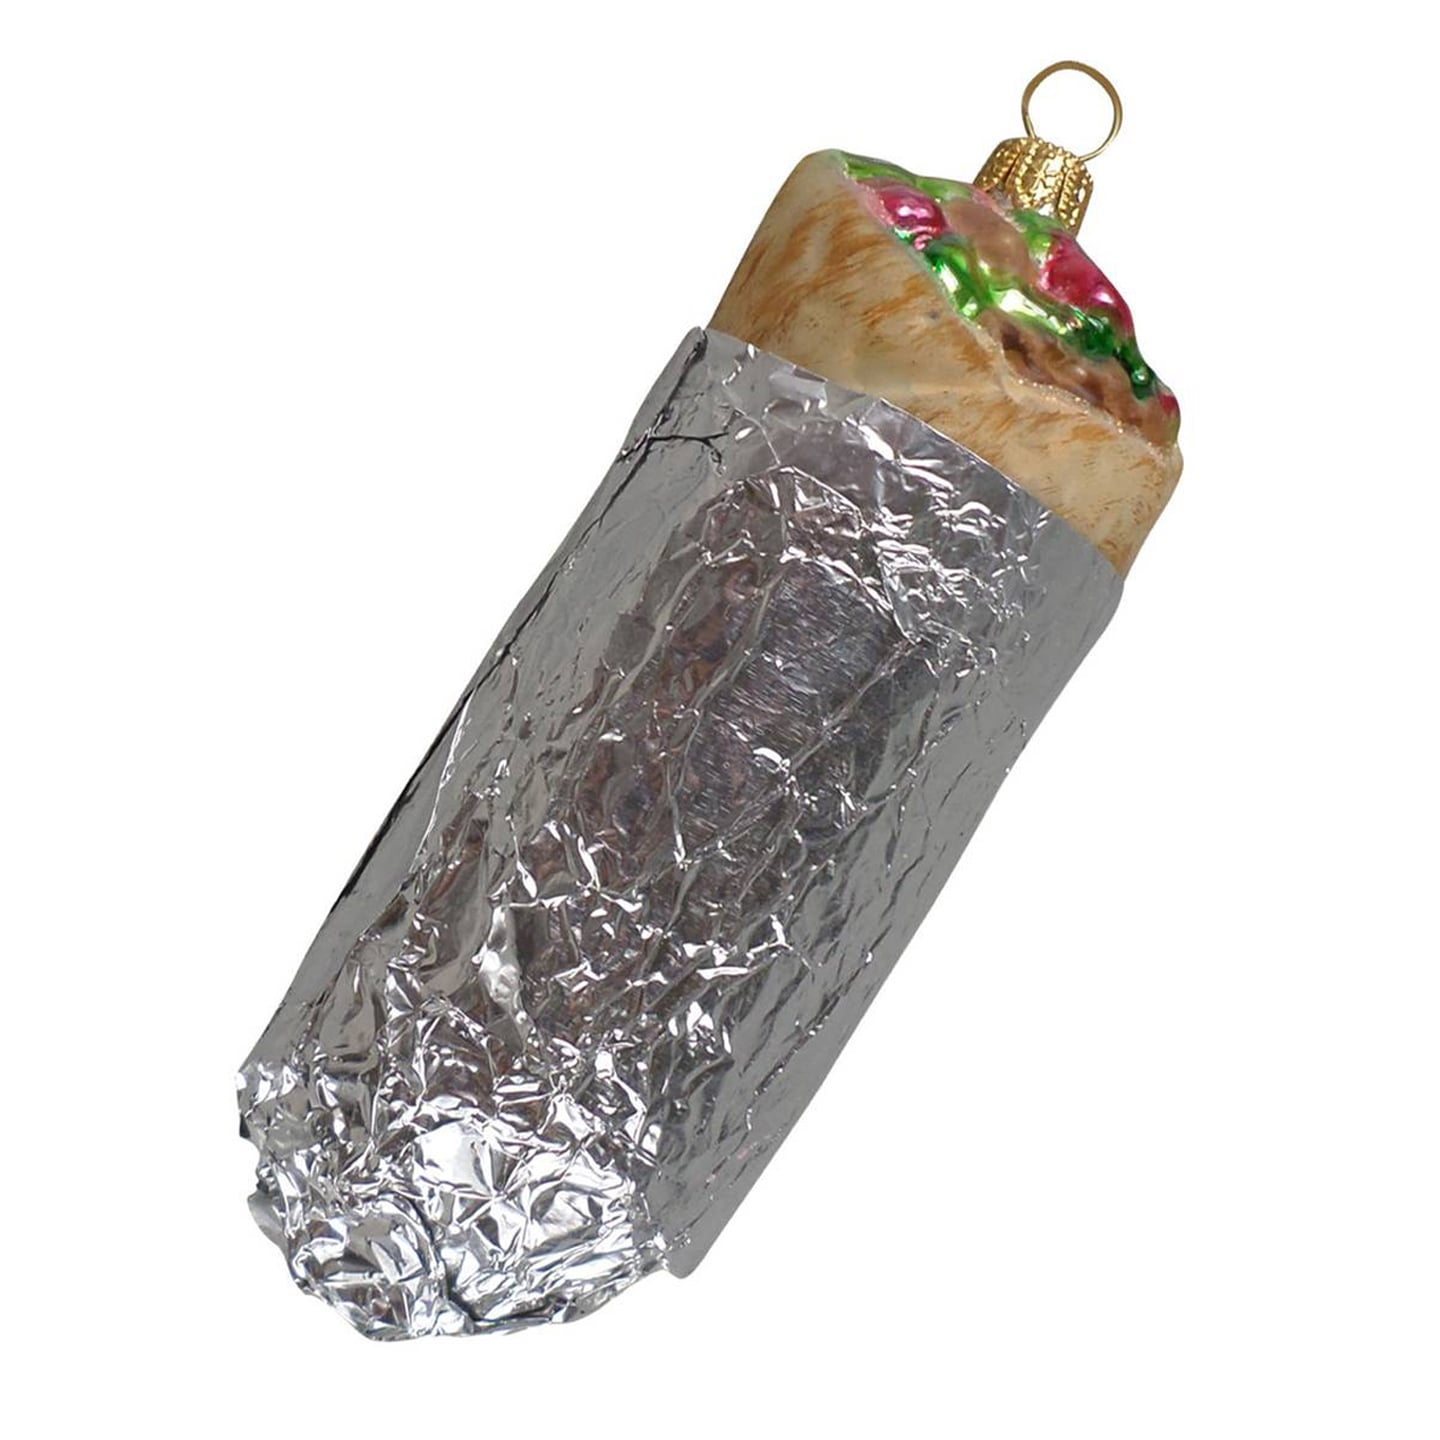 Burrito Christmas Ornament | POPSUGAR Food